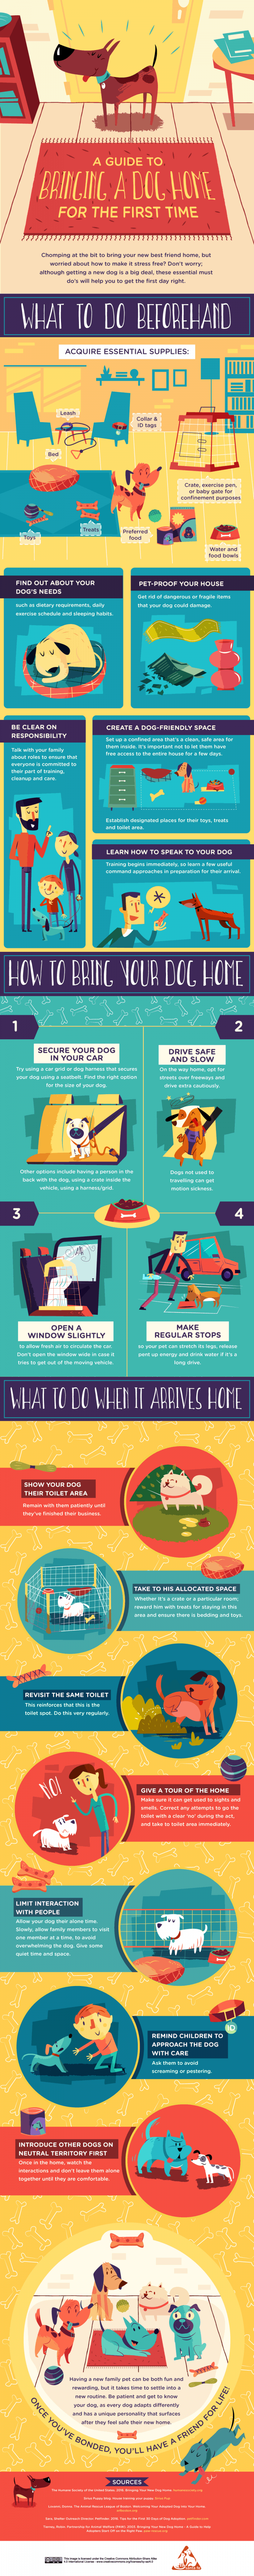 Infographic showing how to introduce your dog to their new home without causing any trauma